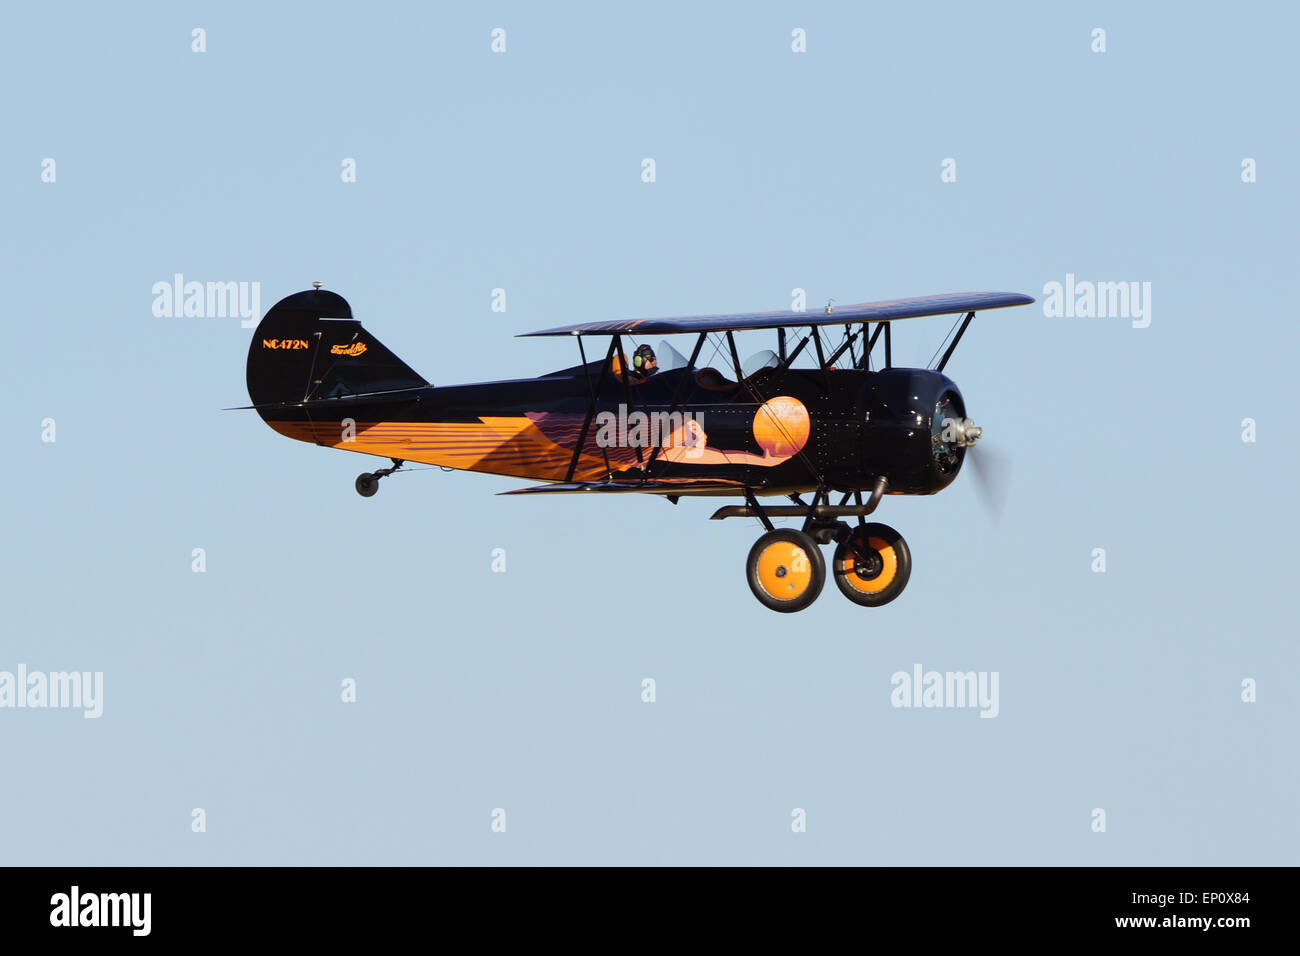 Vintage Bi-plane aircraft flying 2015 Planes of Fame Air Show - Stock Image